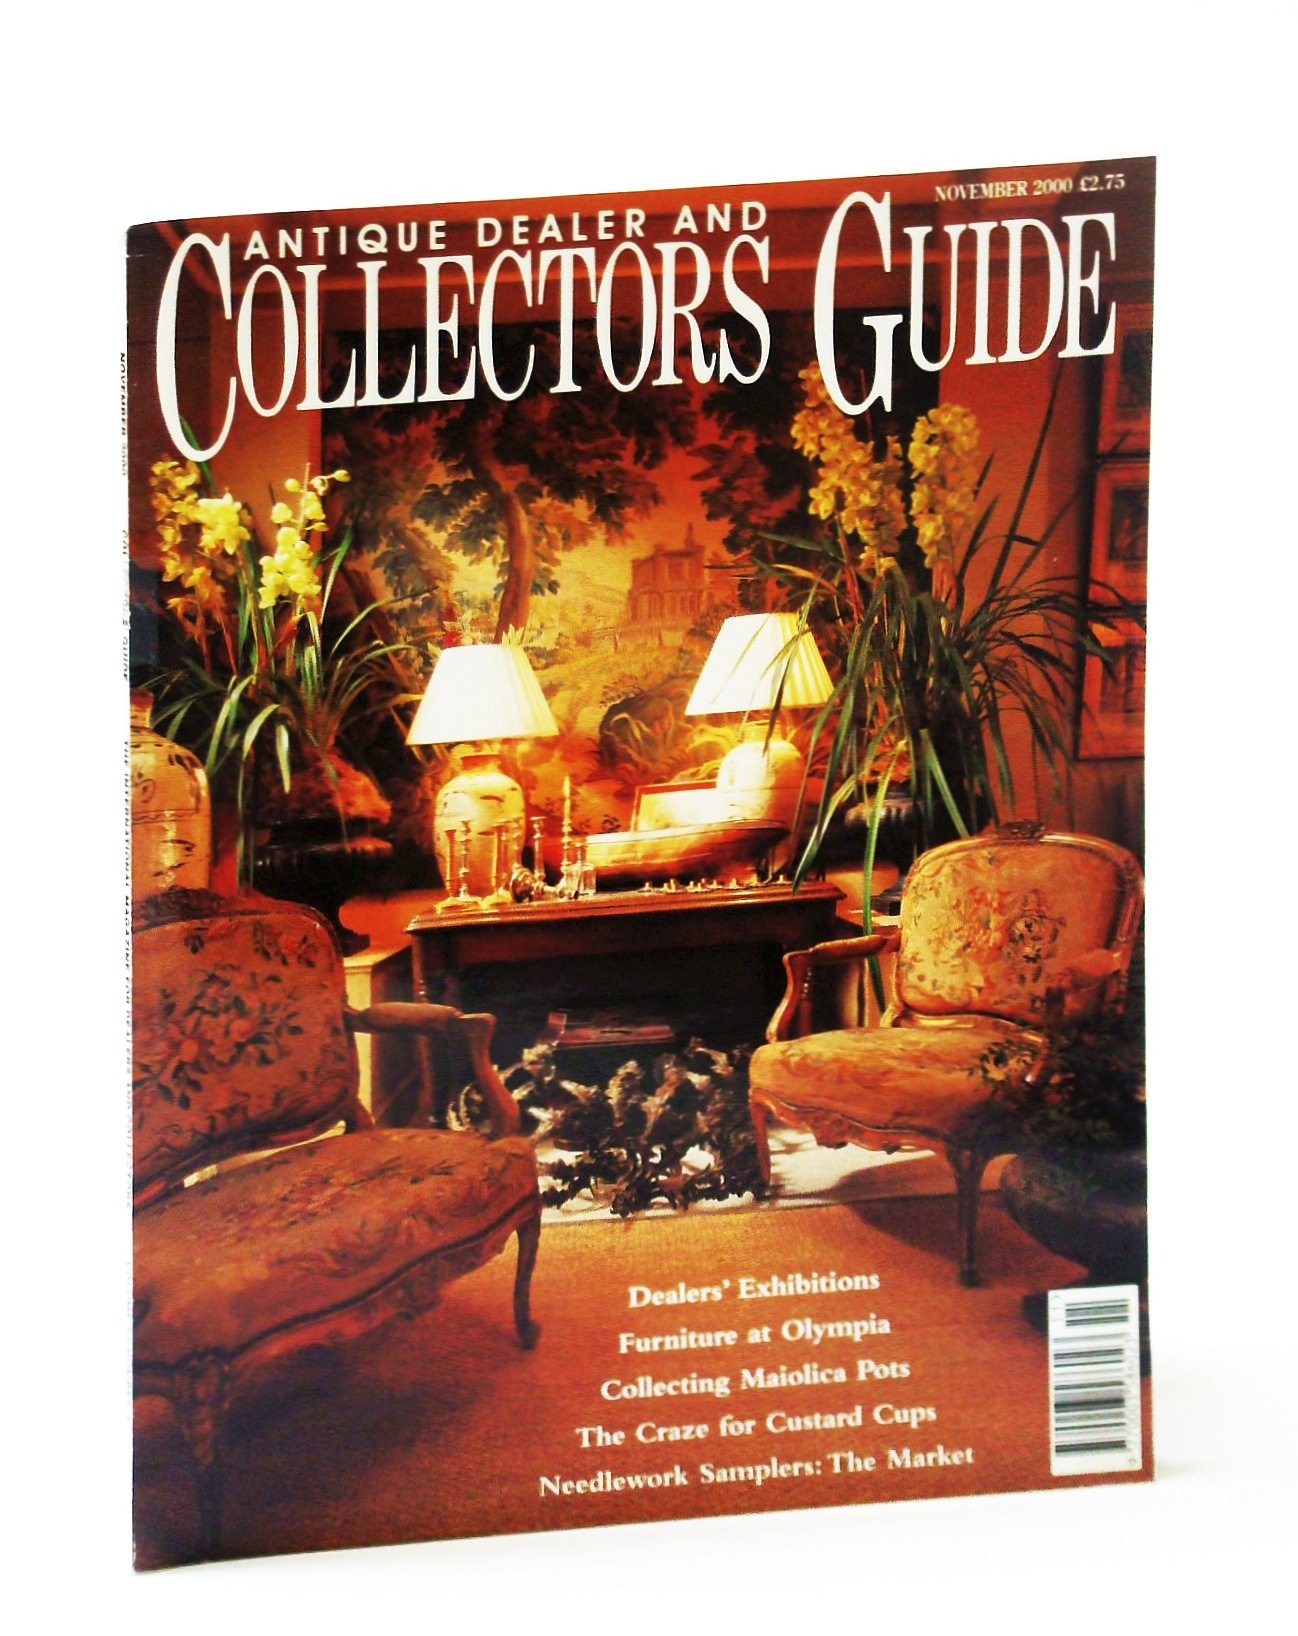 Image for Antique Dealer and Collectors Guide Magazine, November (Nov.) 2000 - The Ruskin Pottery 1920-1933